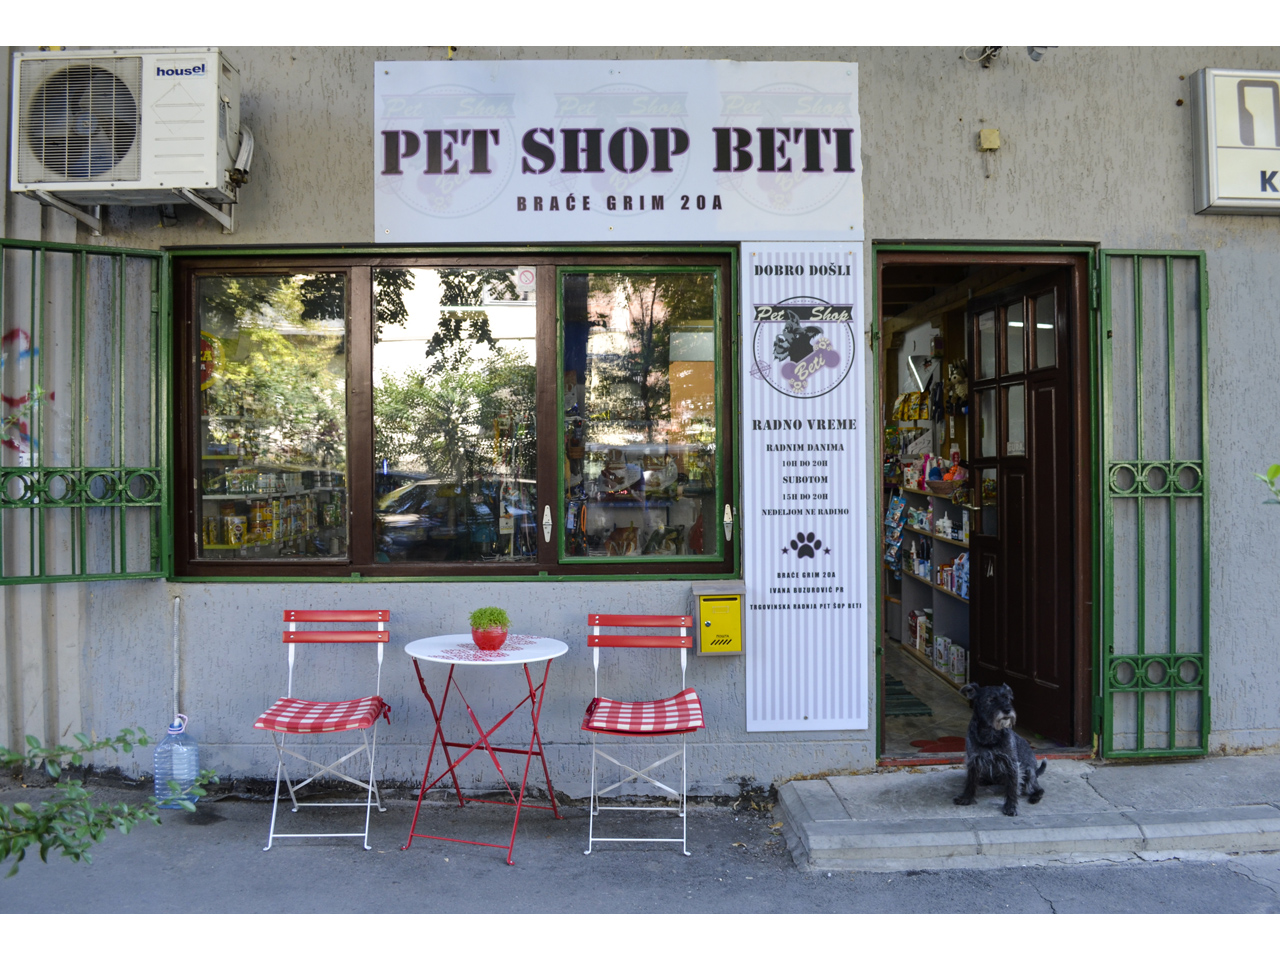 PET SHOP BETI Aquarium shops Beograd